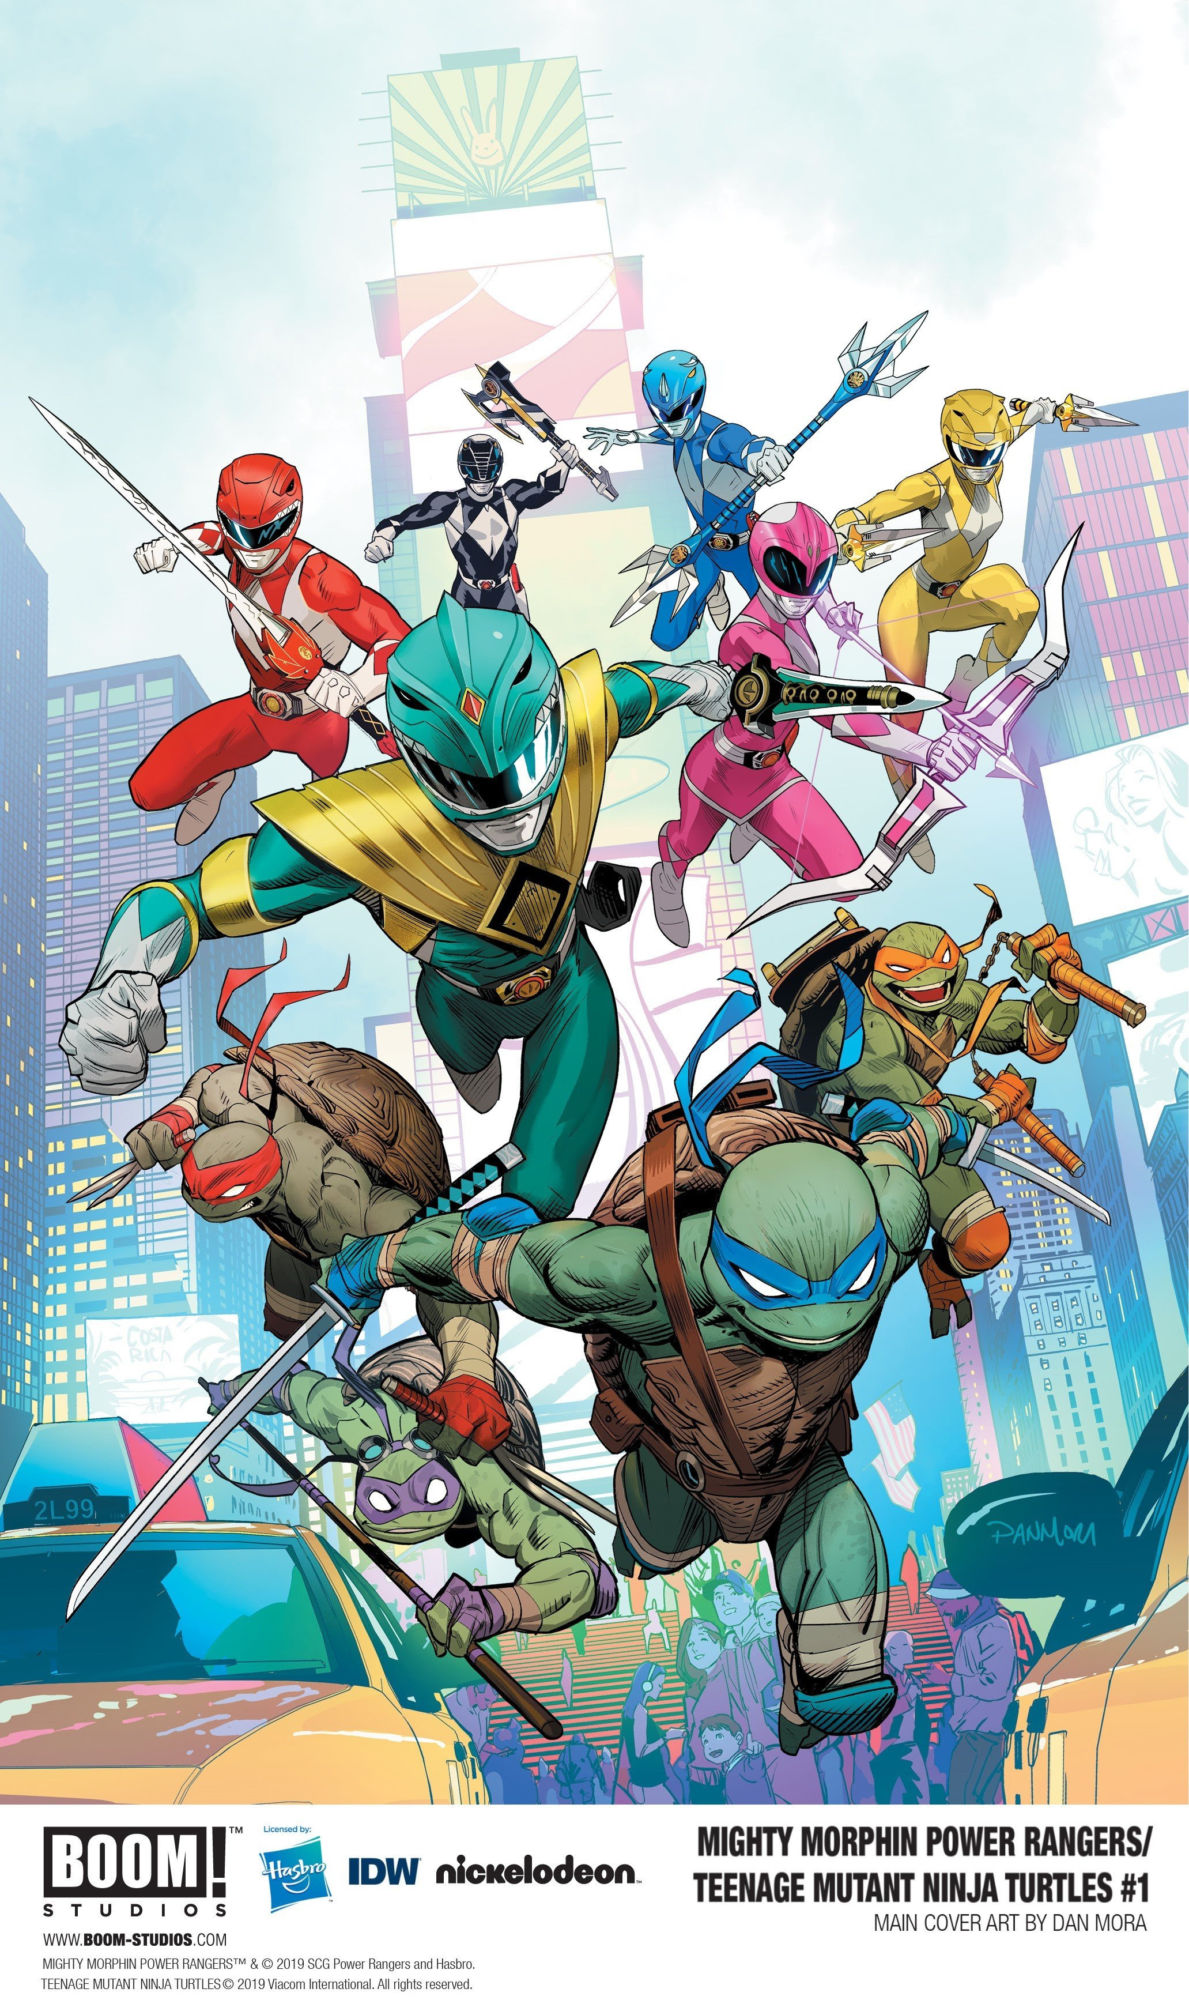 Power Rangers and TMNT Crossover in New Comic Book